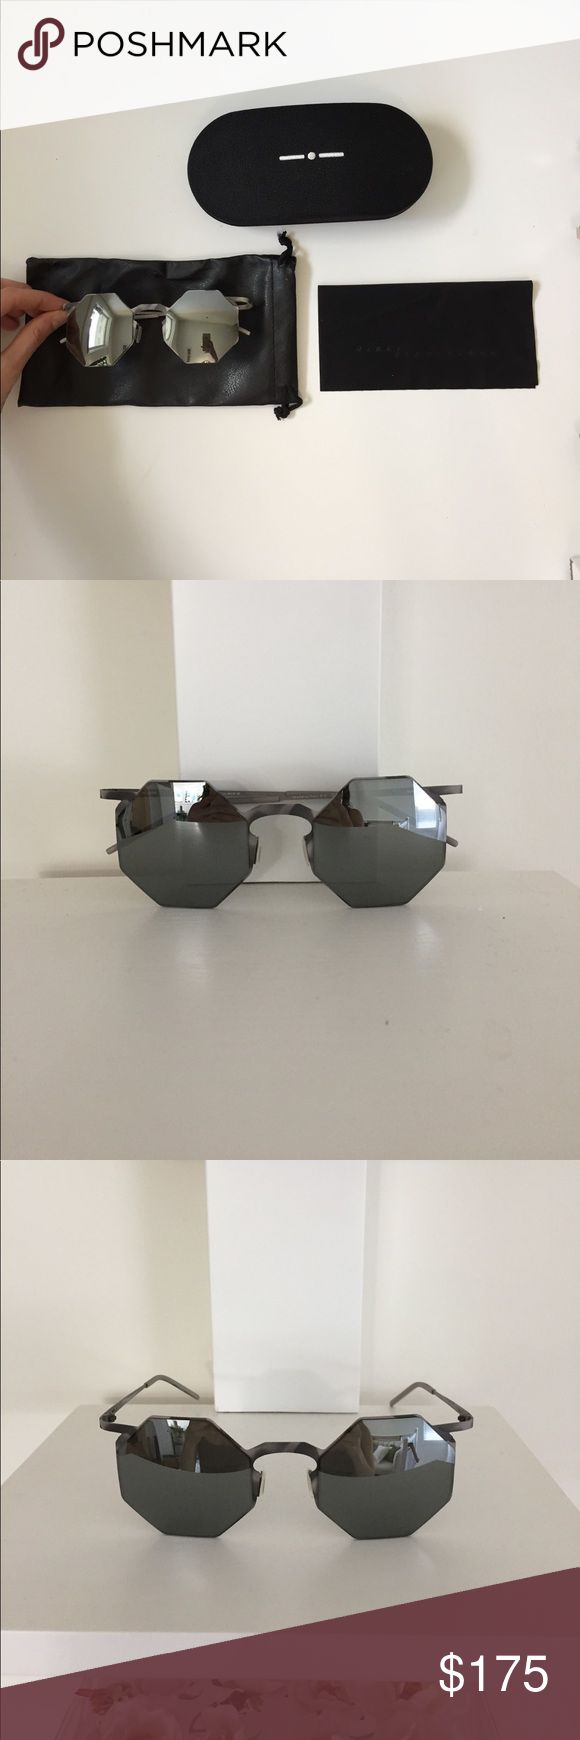 Authentic Italia Independent Designer sunglasses Worn once, like new condition sunnies. Made in Italy, pattern on side, with reflective lenses. See images for details! Leather pouch and original case. italia independent  Accessories Sunglasses